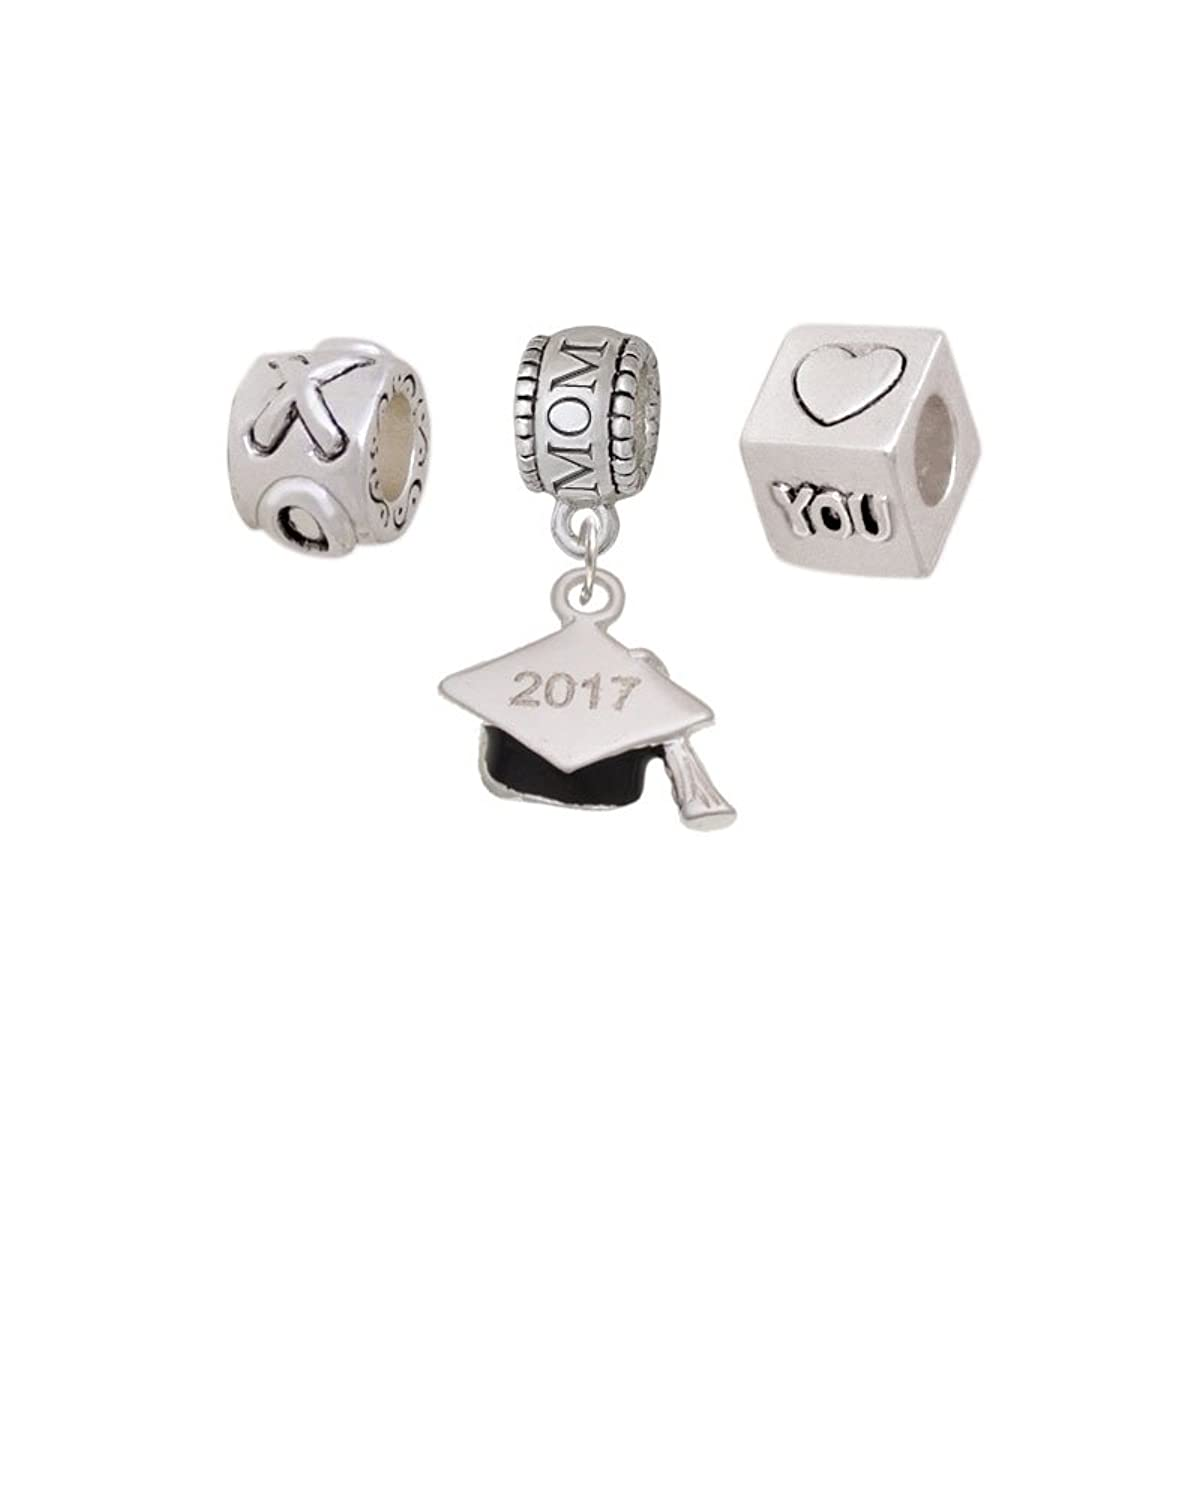 3-D Graduation Hat Mothers Day Charm Beads (Set of 3)